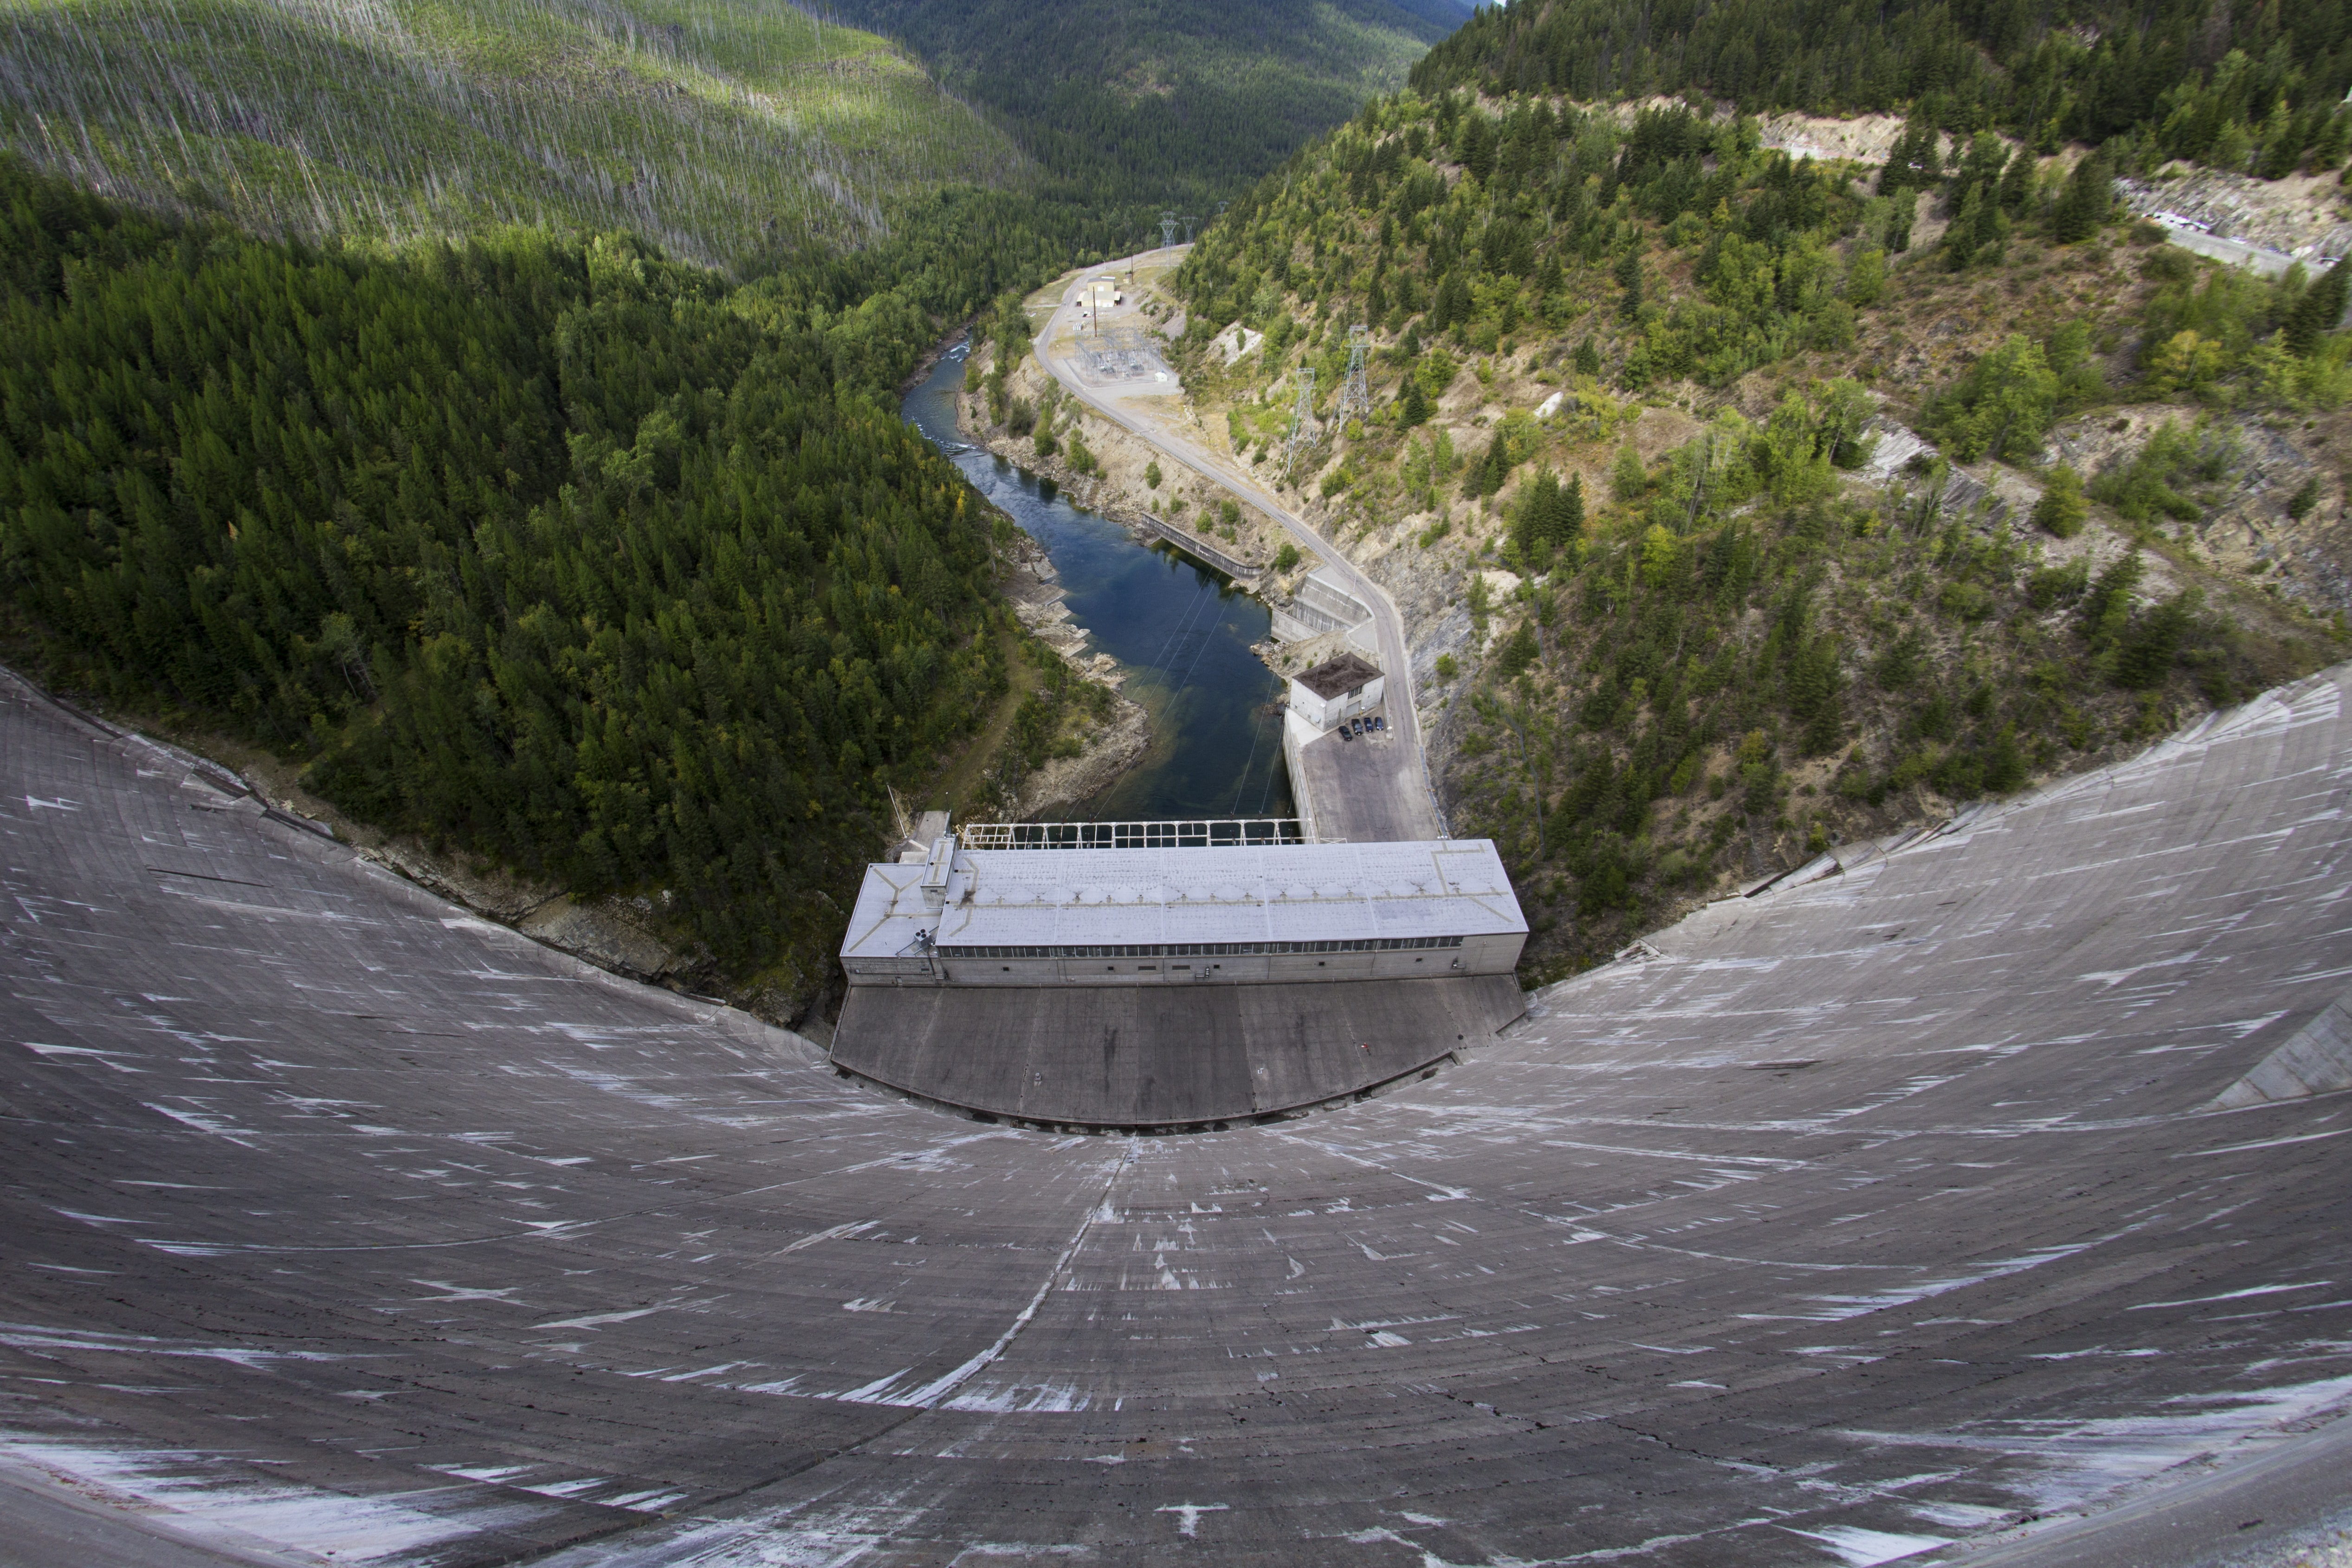 View from the top of a tall concrete dam on the river below